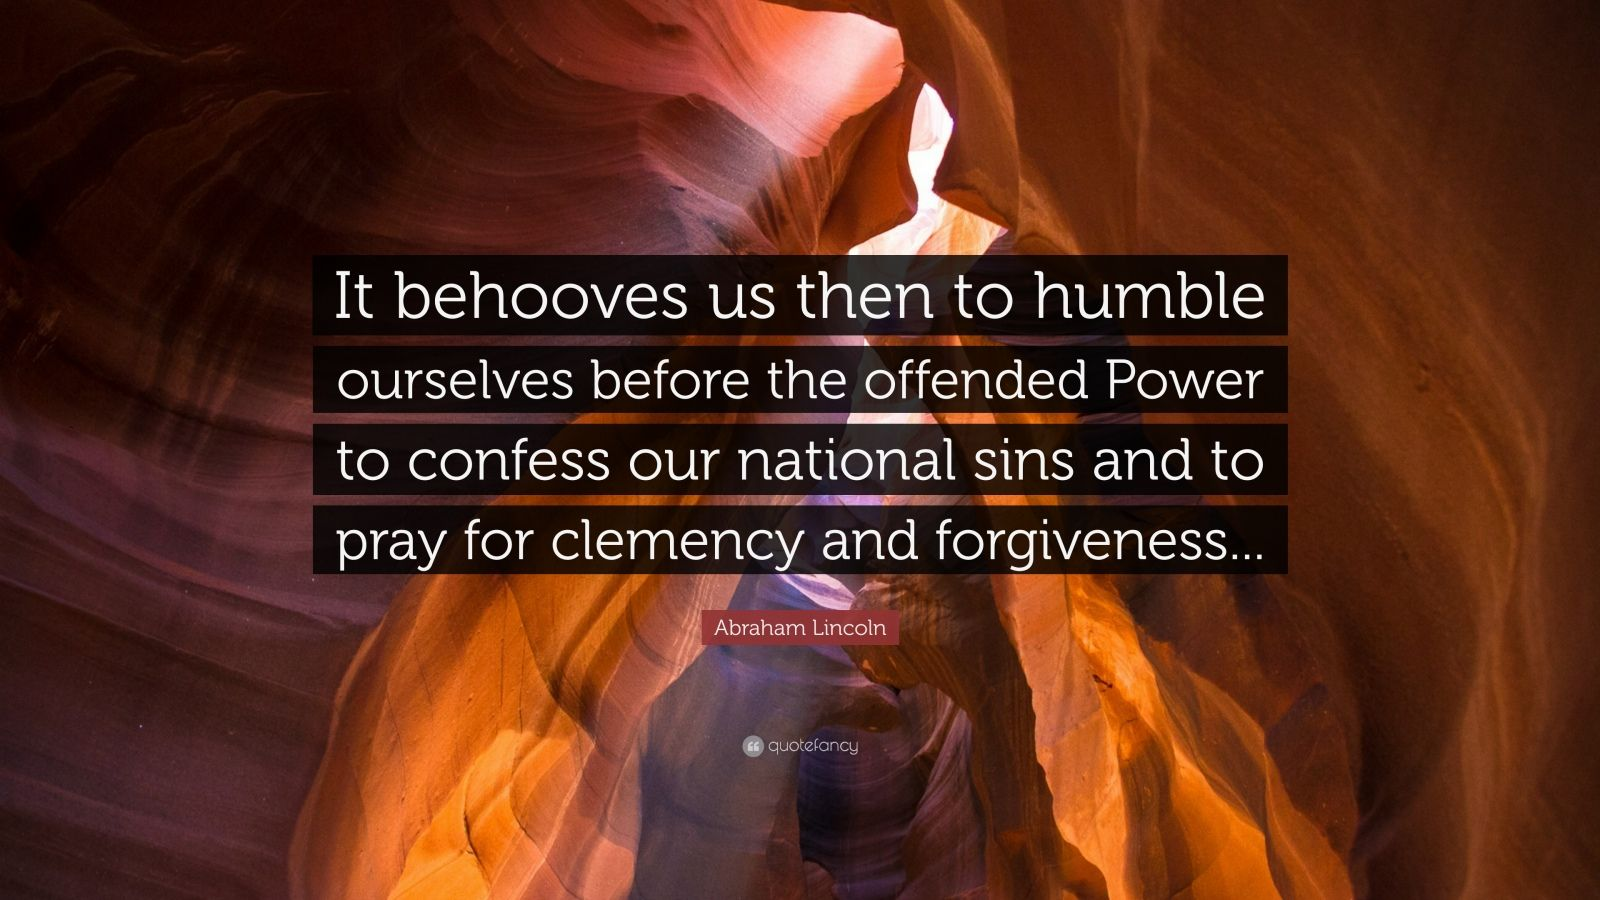 """Abraham Lincoln Quote: """"It behooves us then to humble ourselves before the offended Power to confess our national sins and to pray for clemency and forgiveness..."""""""